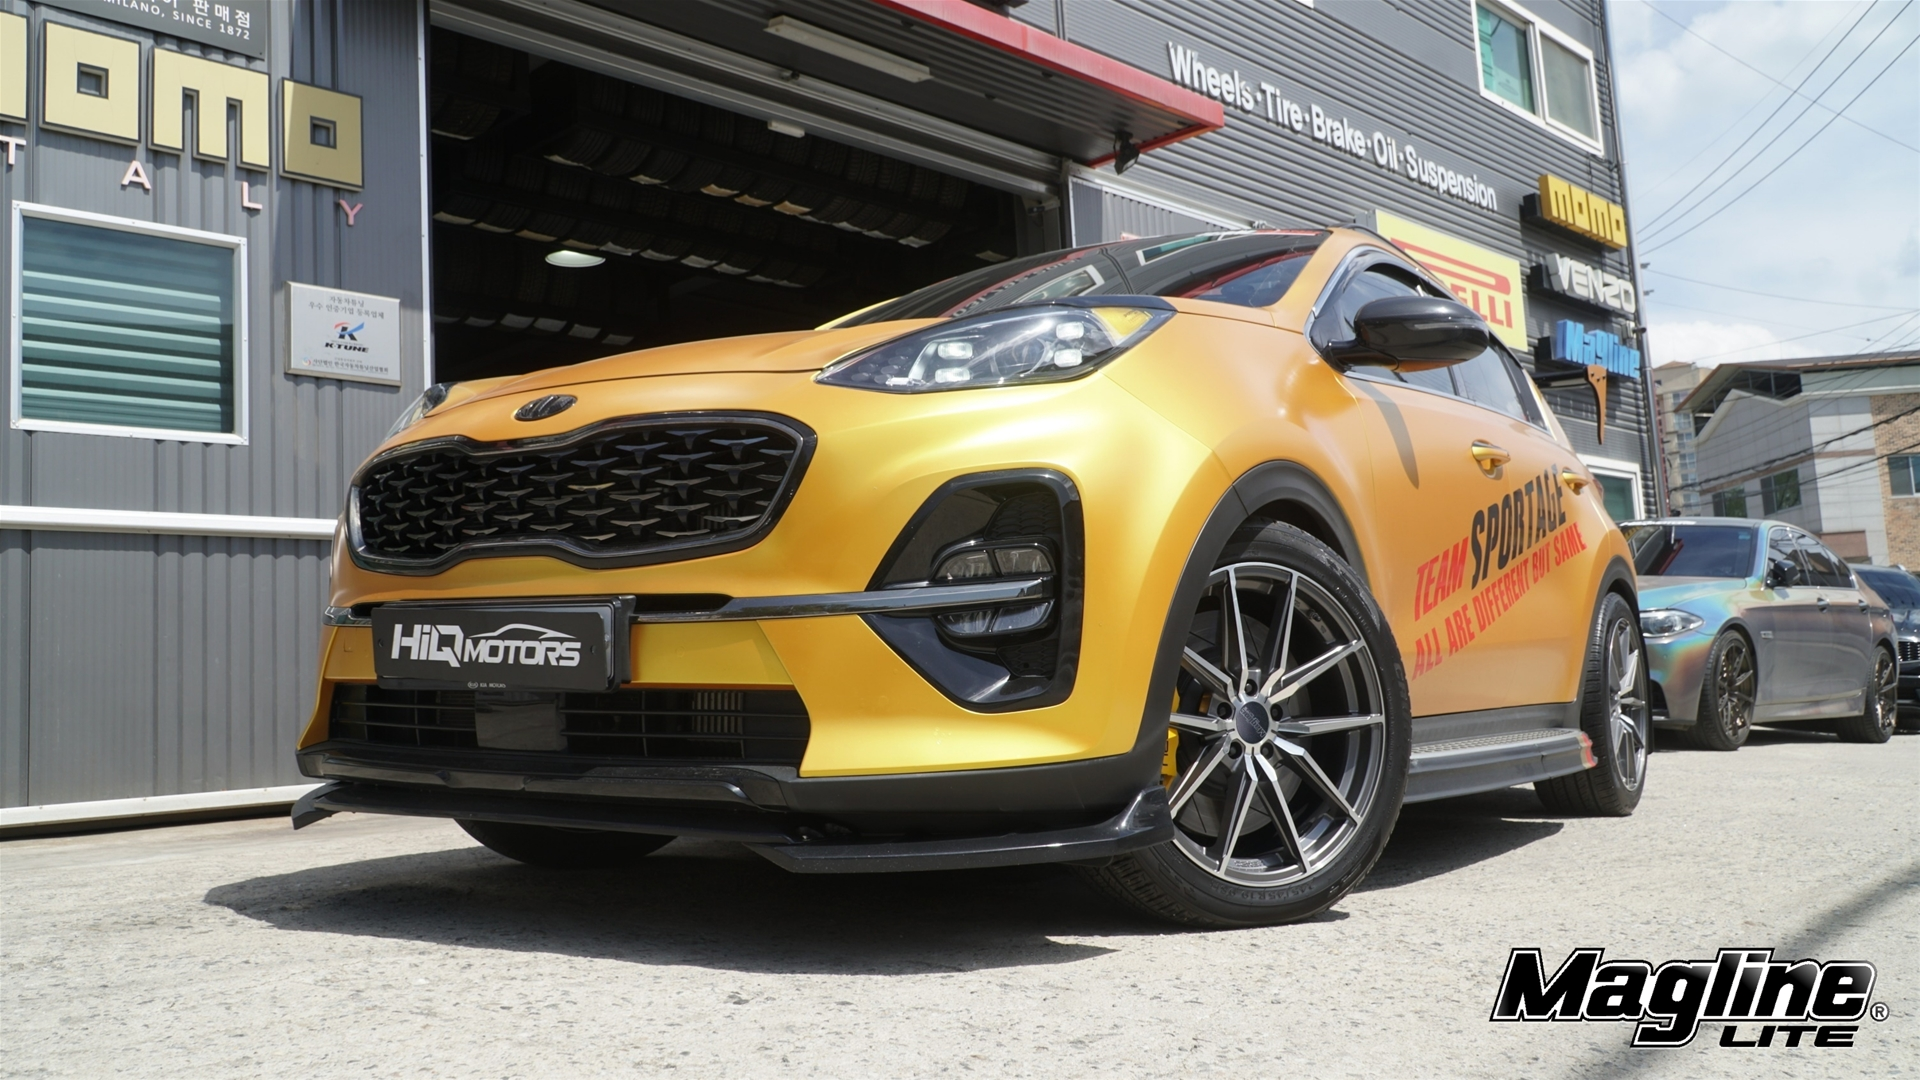 H-819 fitted with KIA Sportage